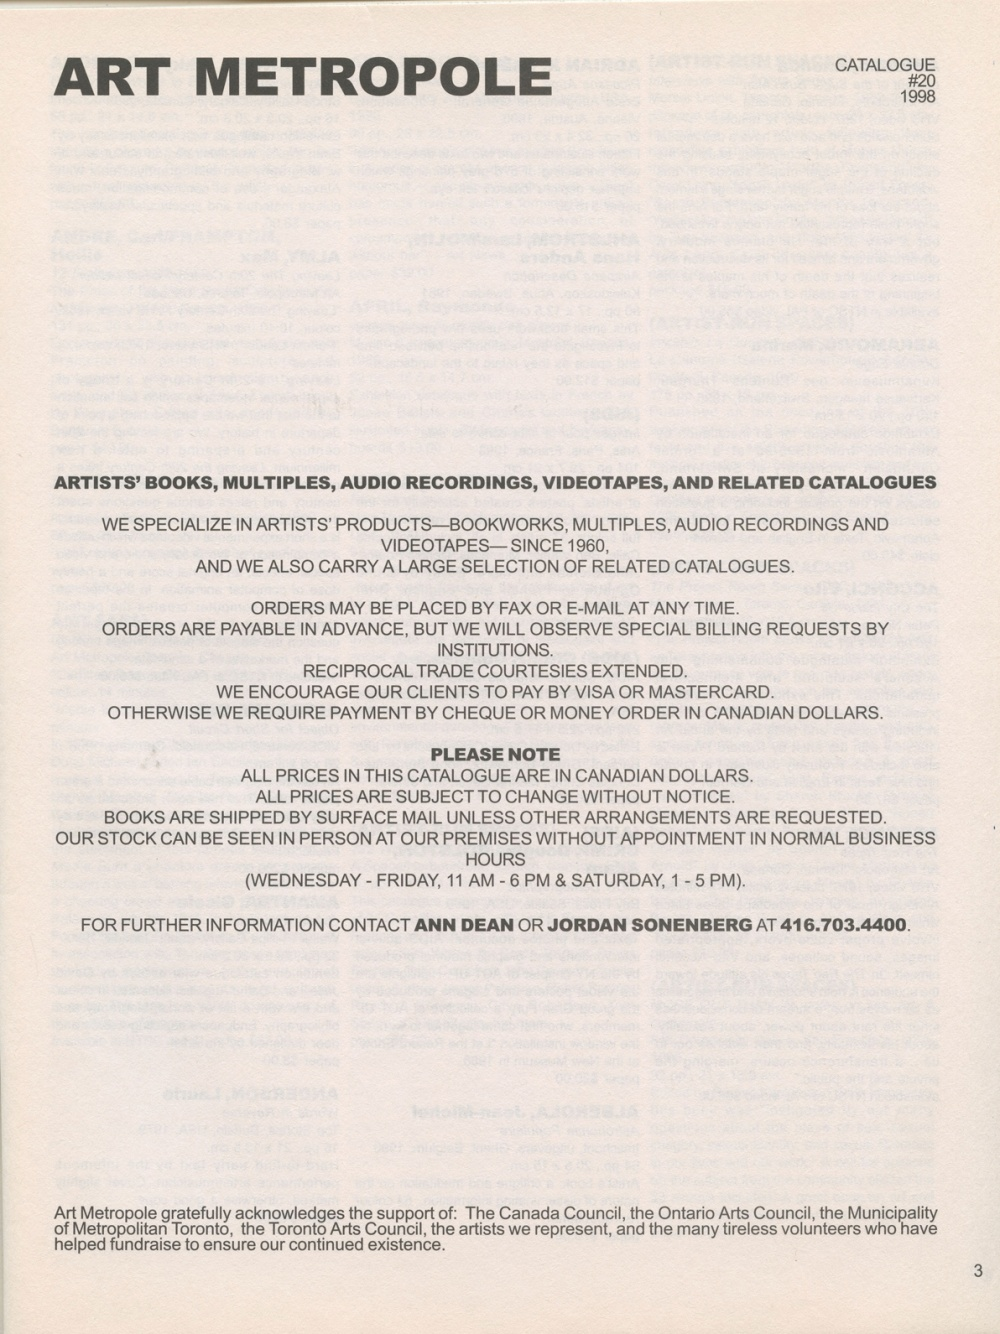 Art Metropole. Catalogue No. 20. 1998 (page)